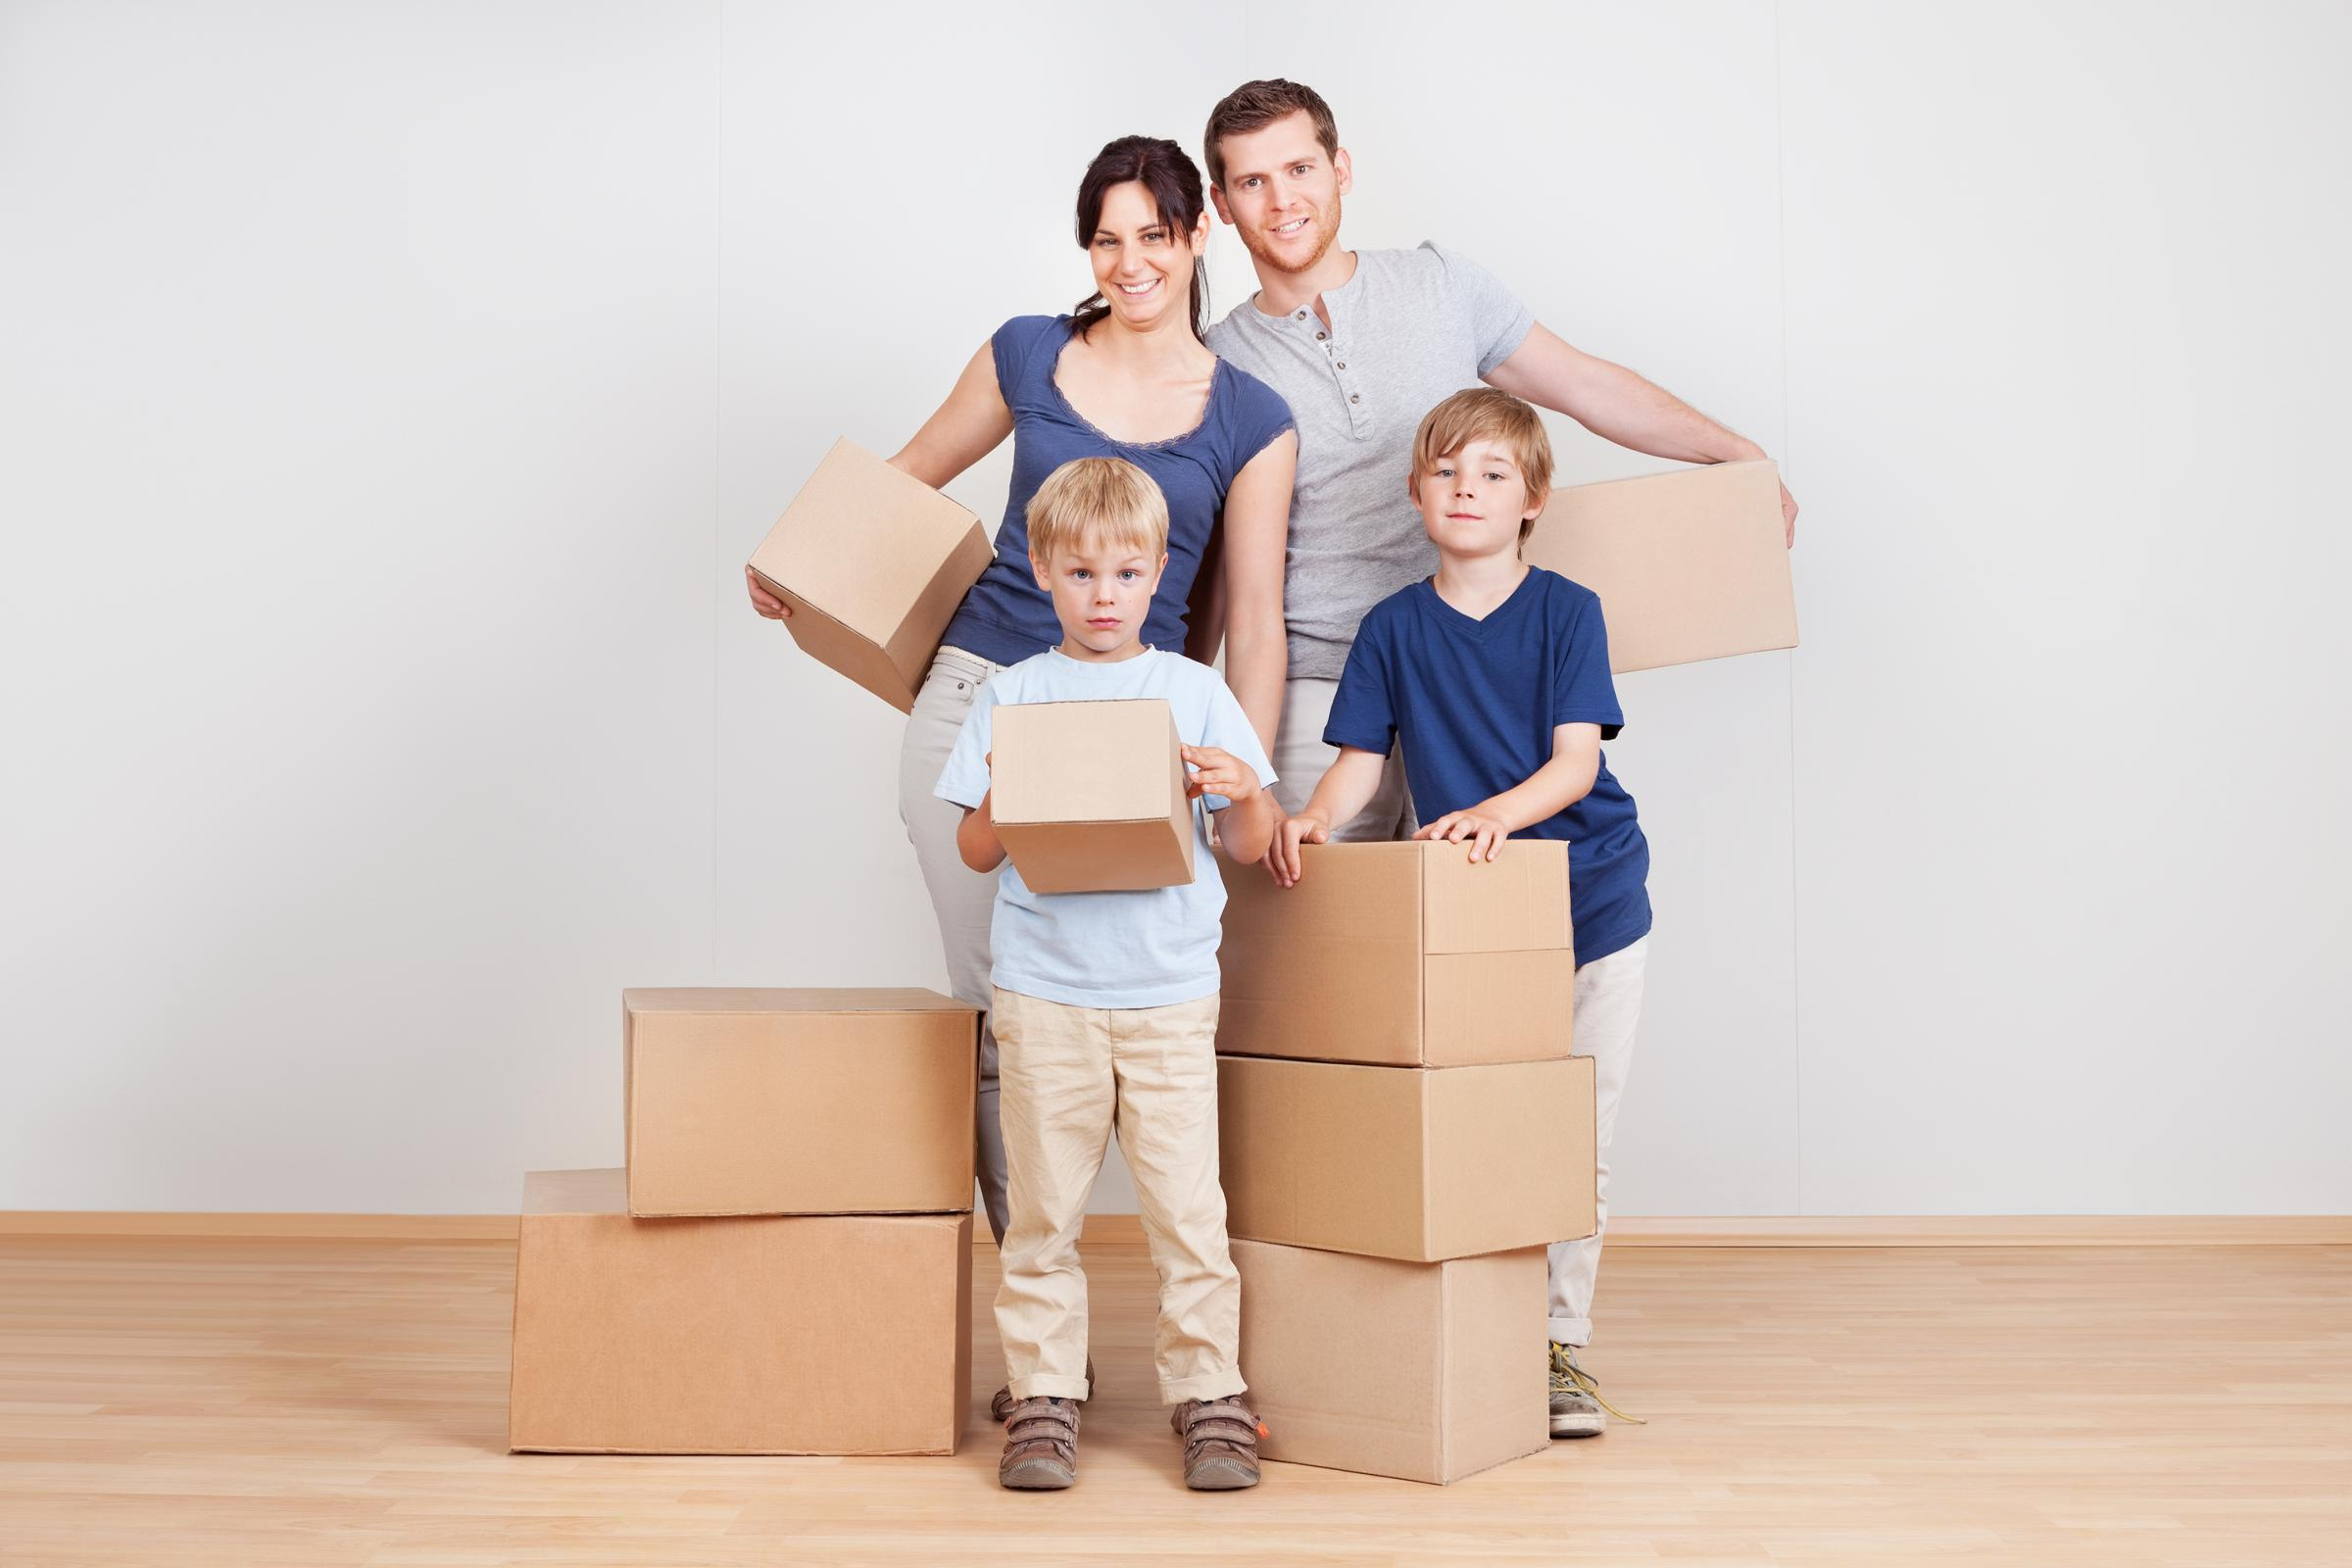 Many families are hoping to move